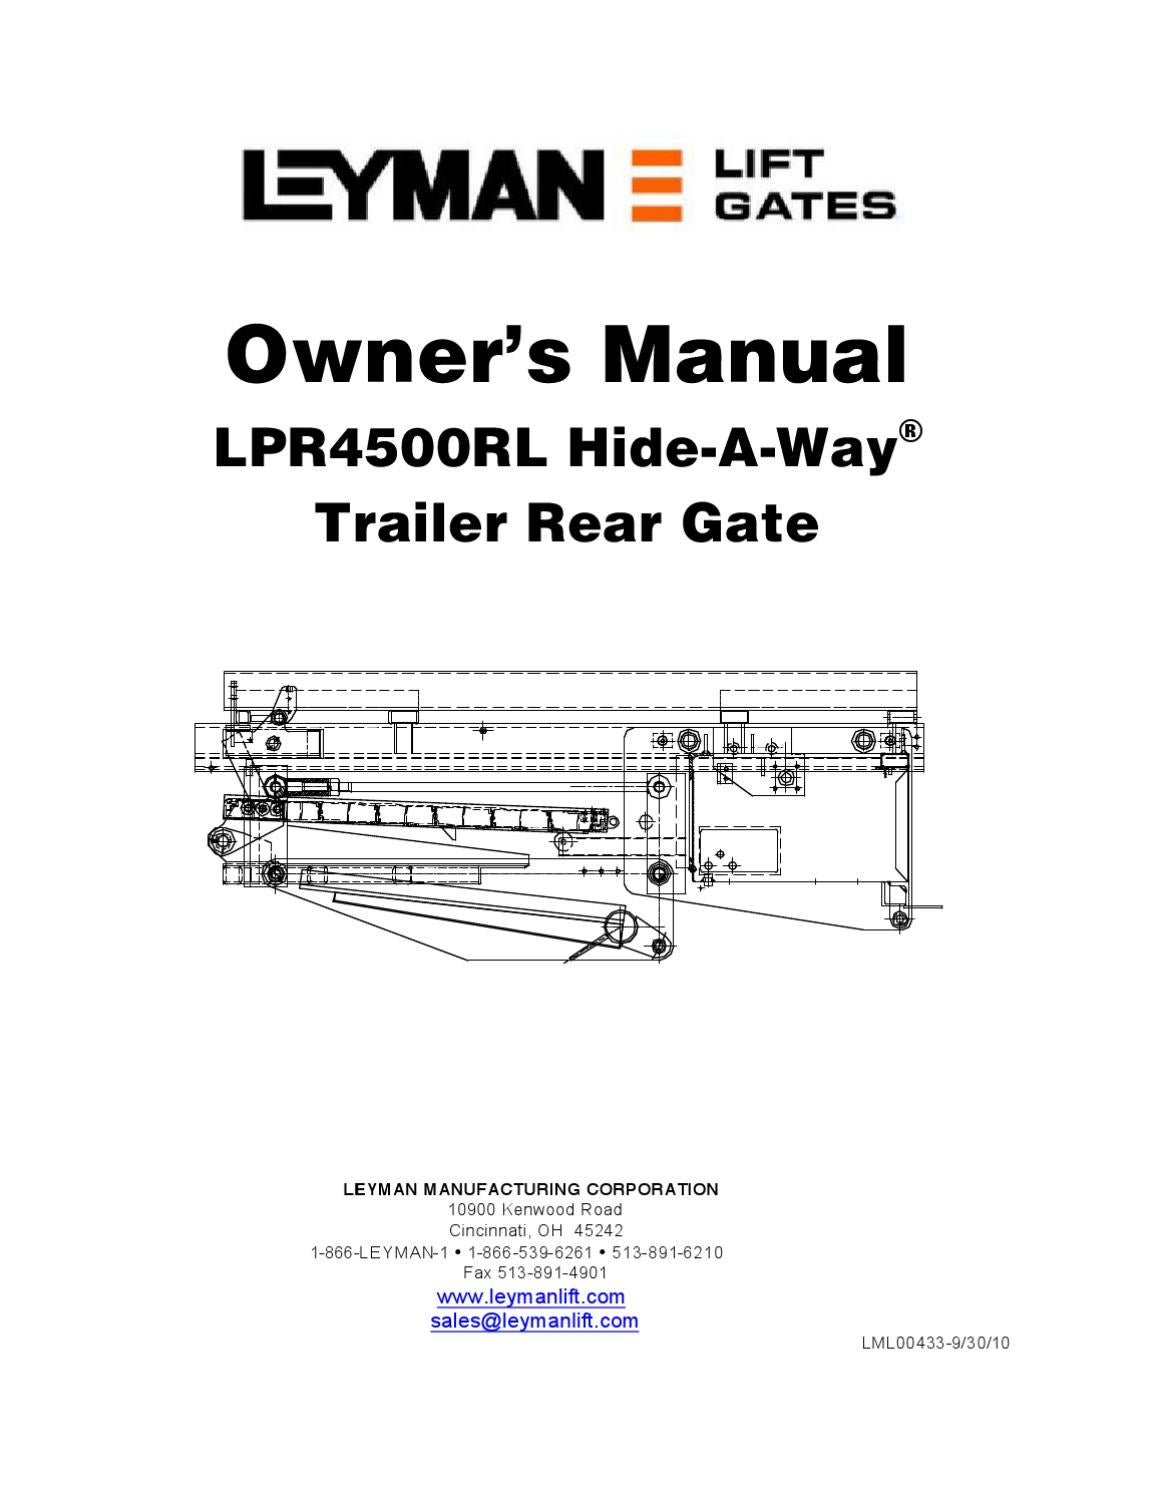 leyman liftgate wiring diagram leyman lpr 4500rl series liftgate by the liftgate parts co ...